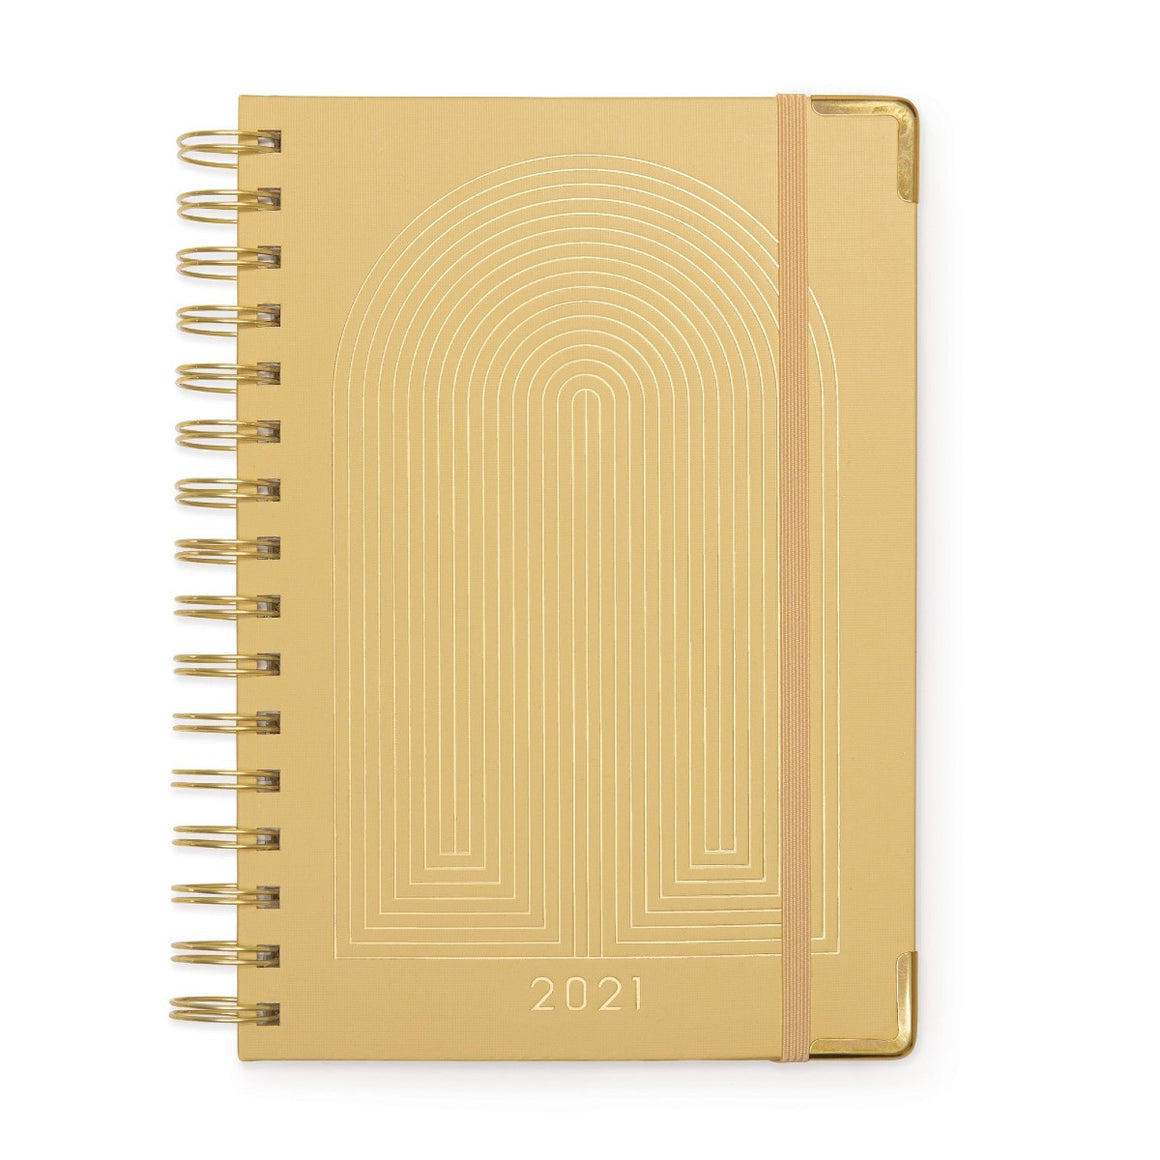 2021 Diary | 12 month weekly | spiral bound | yellow radiant rainbow